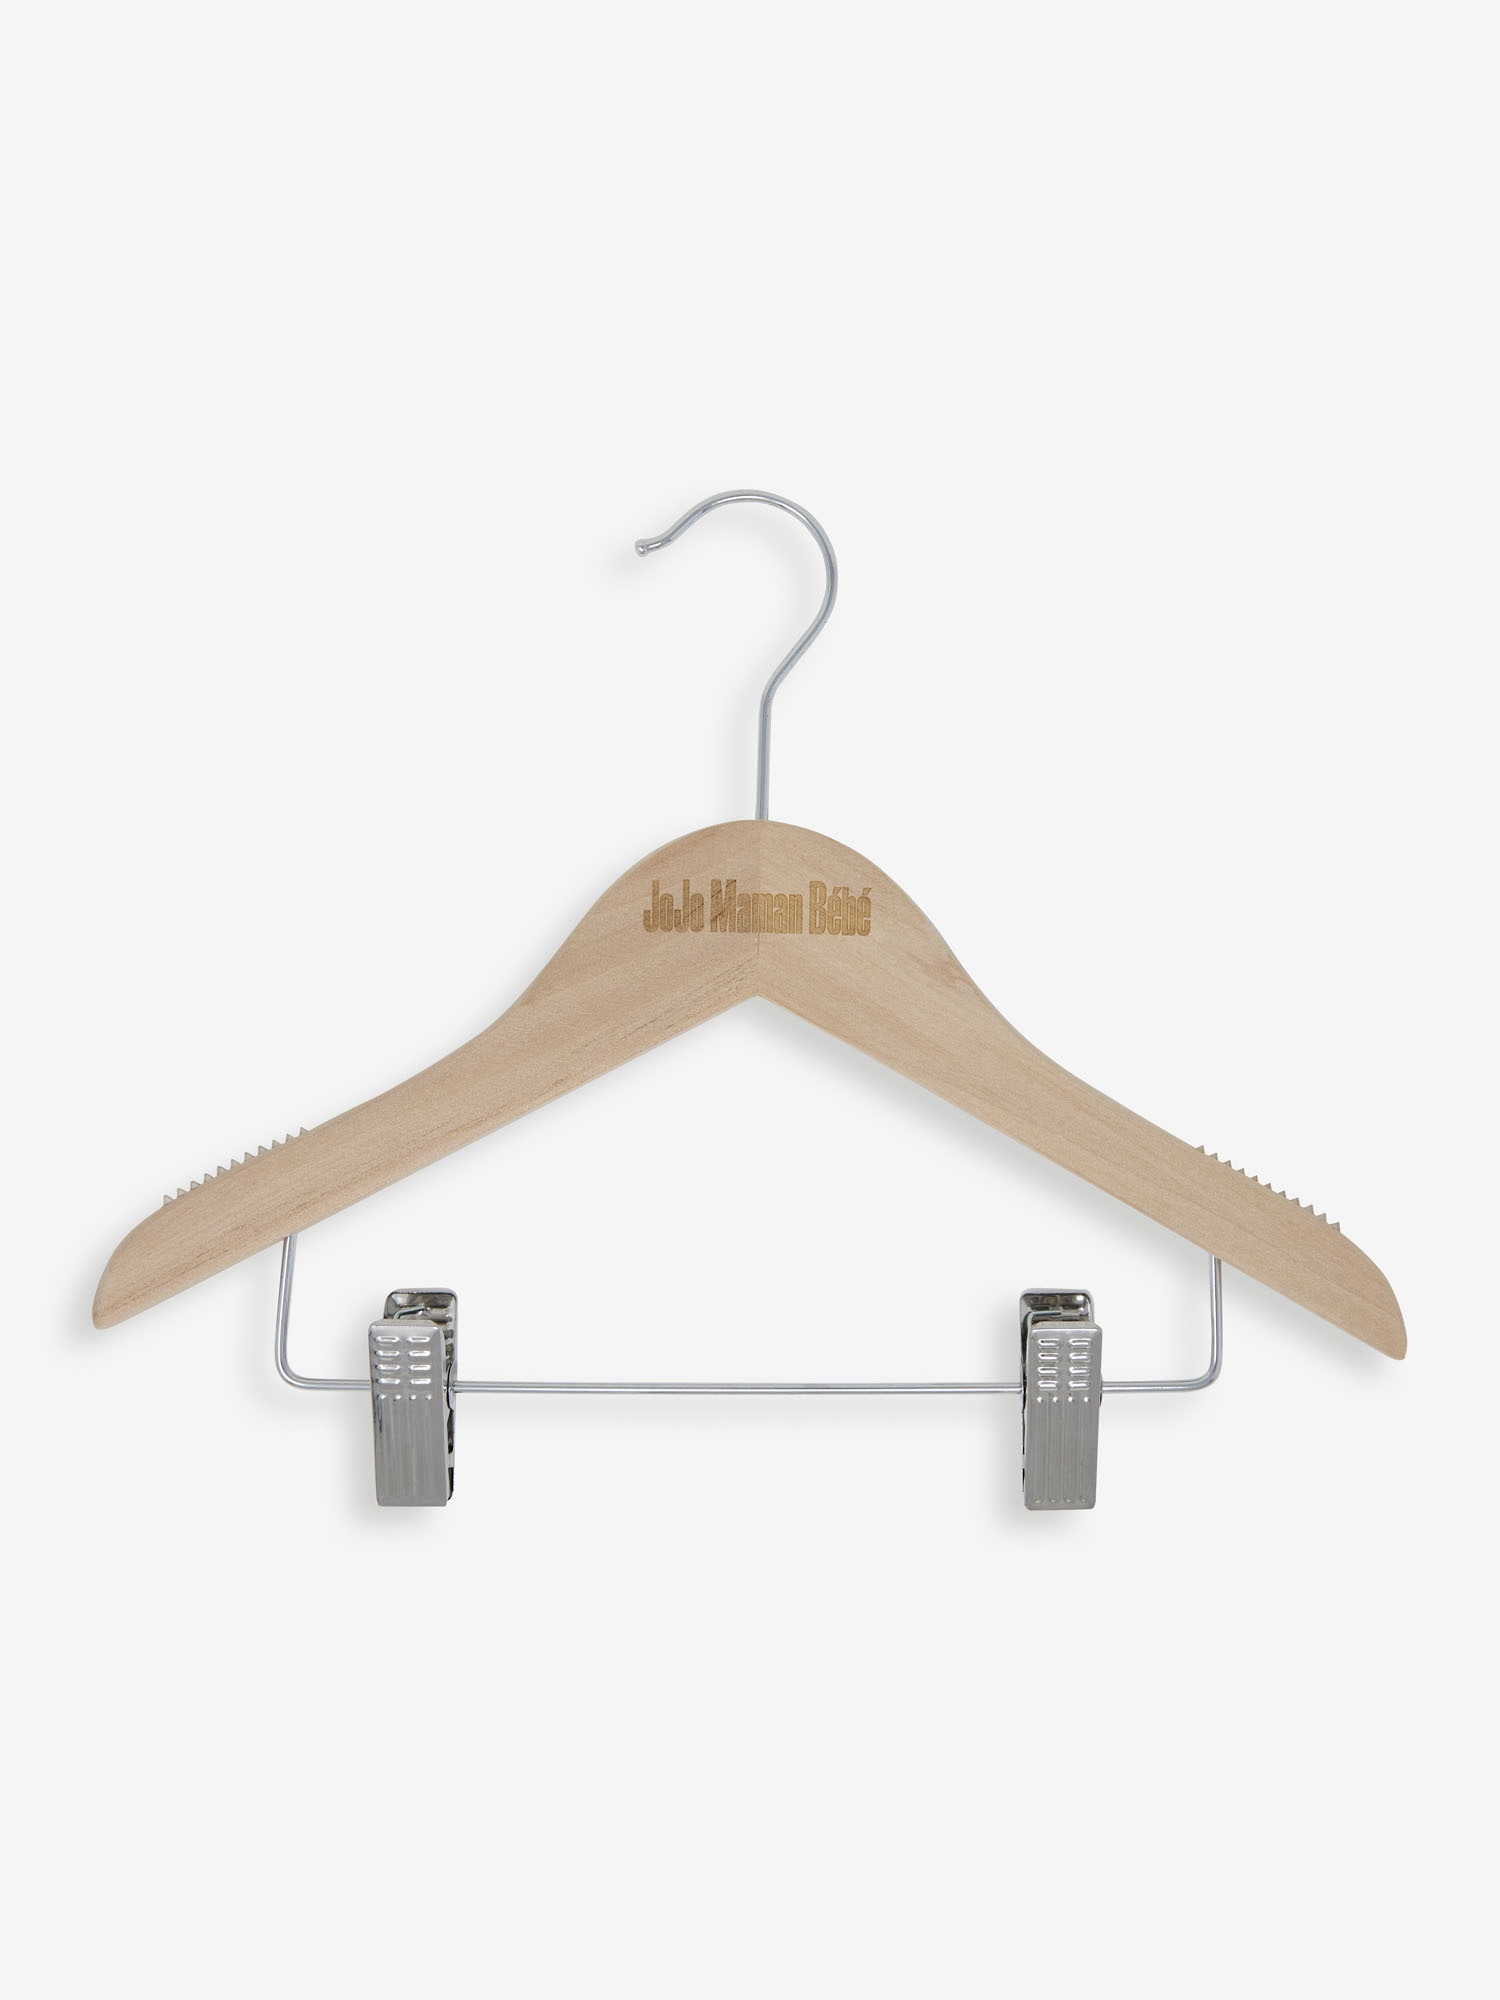 Set of 12 Kids' Size Wooden Hangers